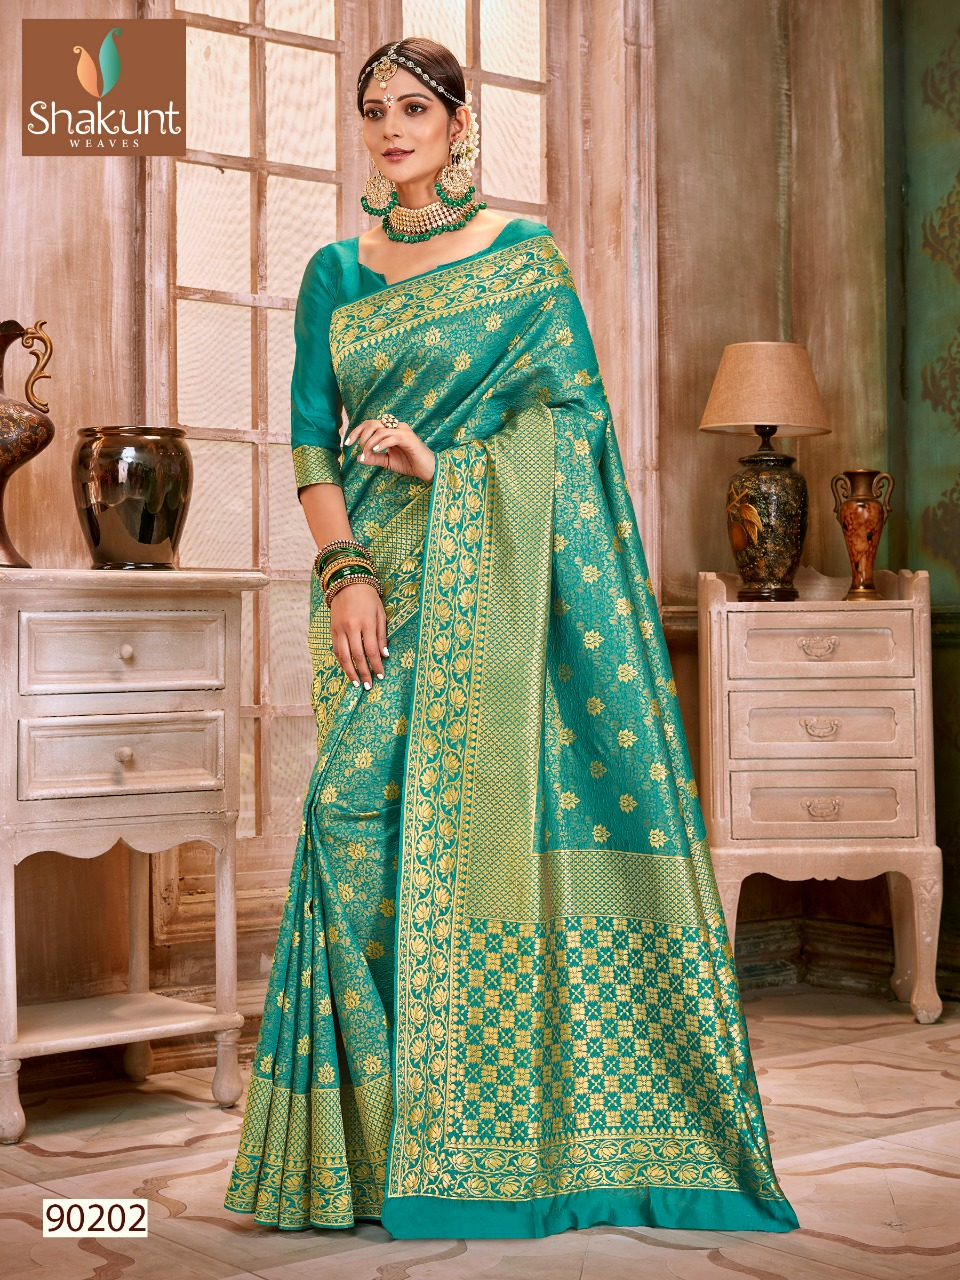 Shakunt weaves prabhodini Traditional printed silk sarees collection Wholesaler